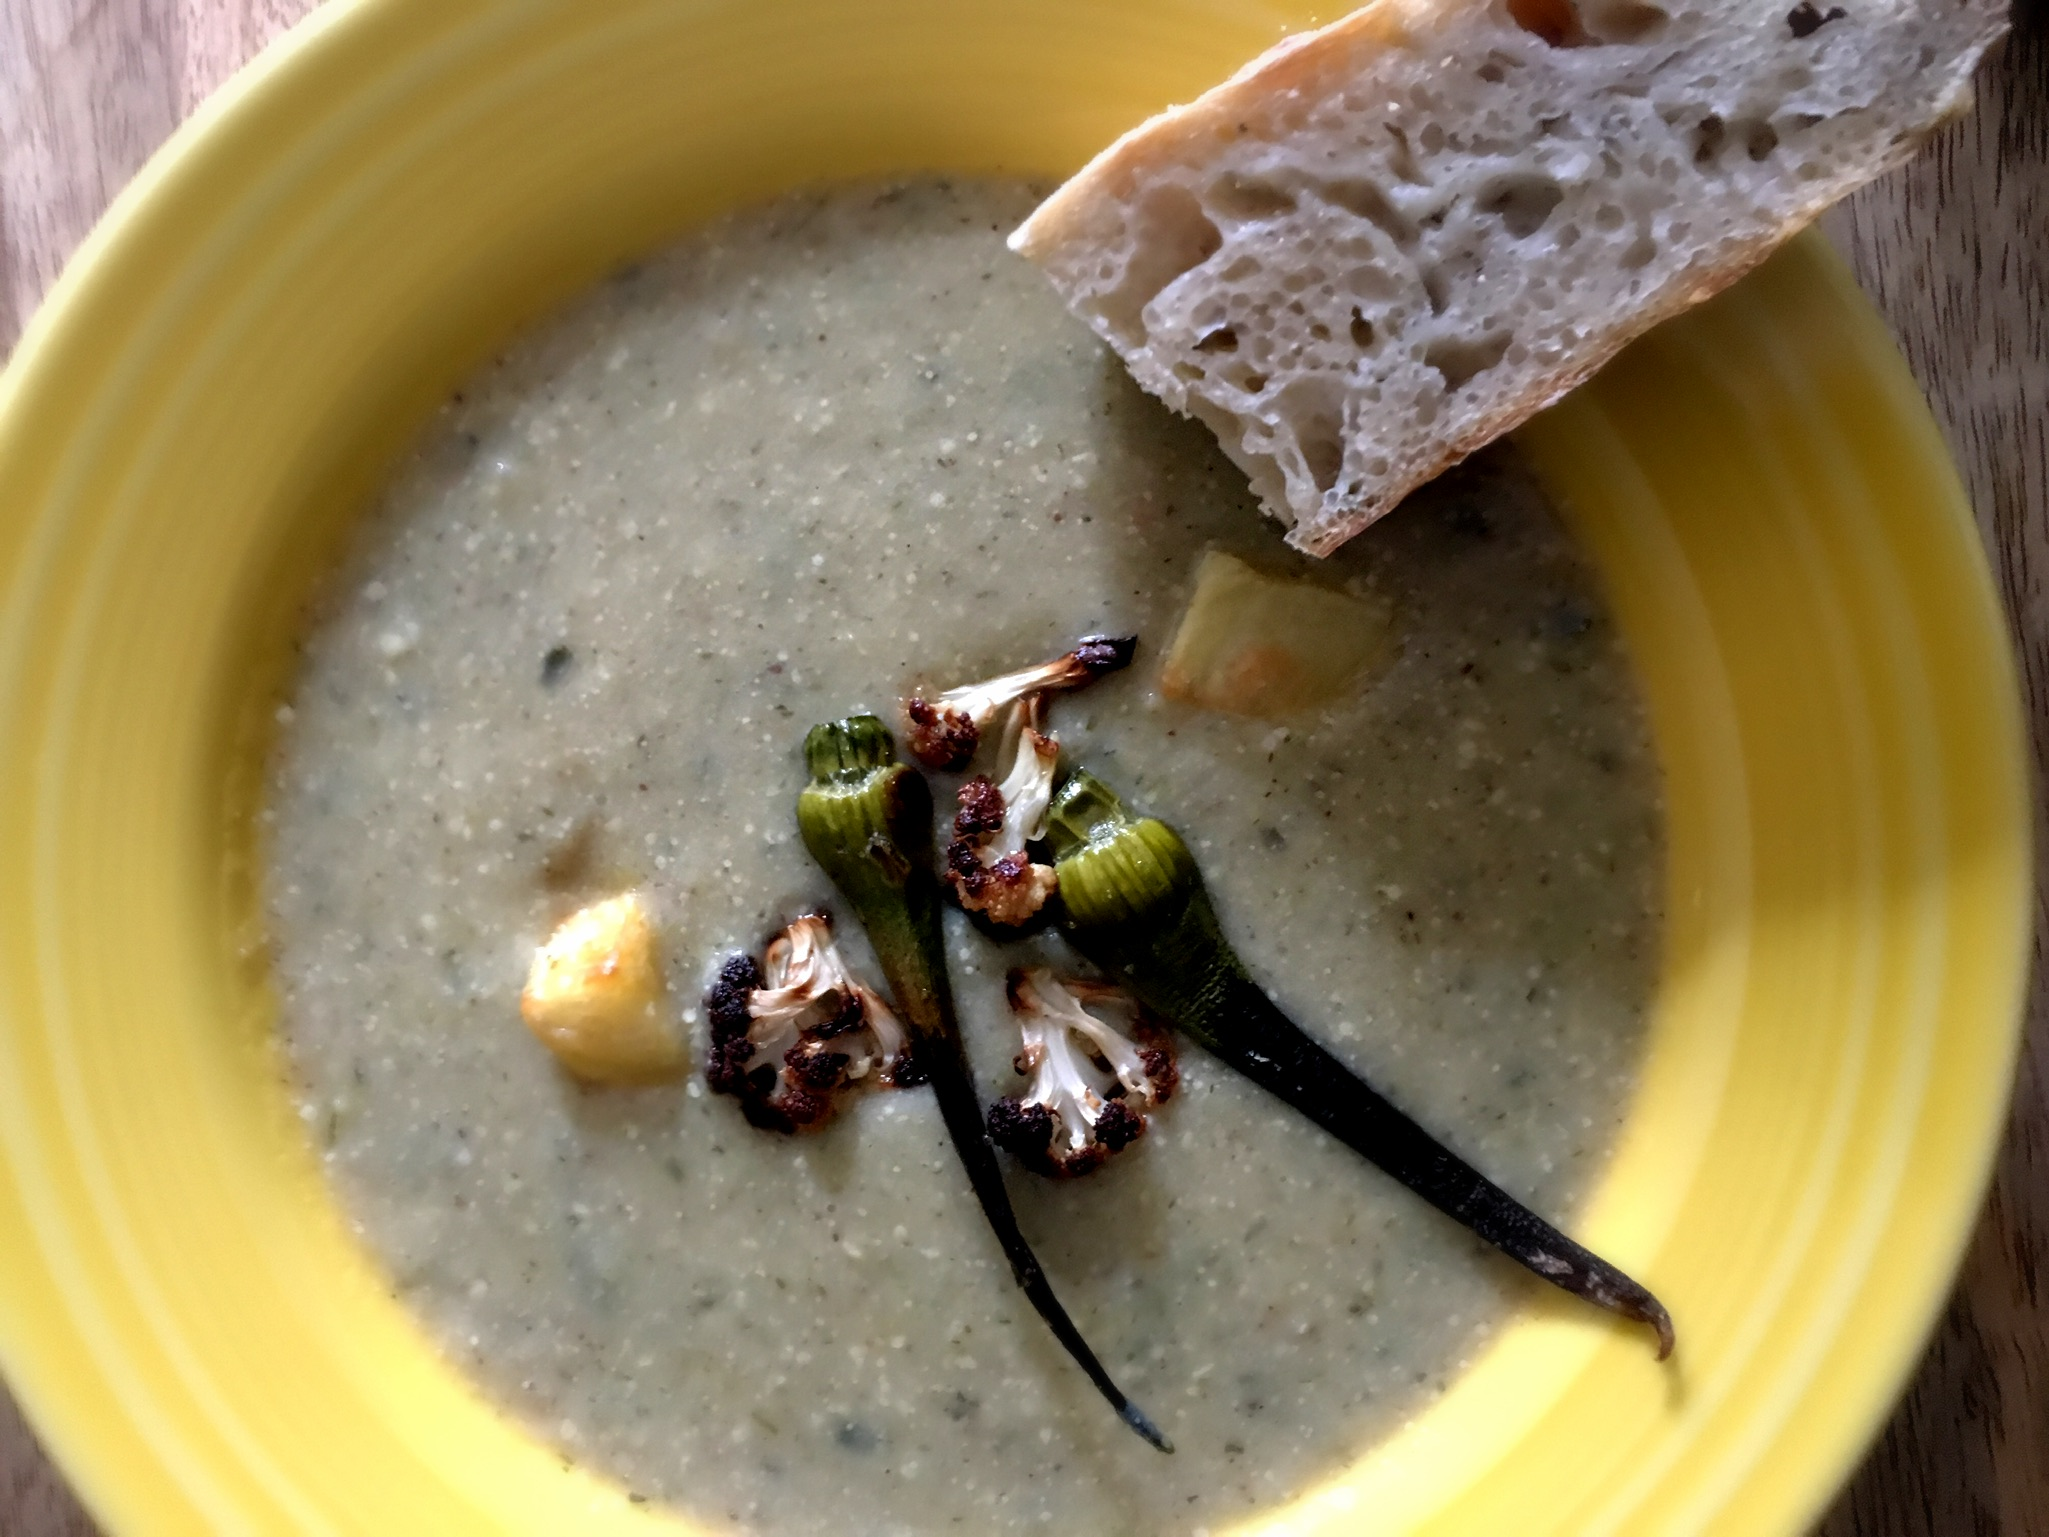 roasted garlic scape, potato, cauliflower soup with homemade rosemary thyme bread